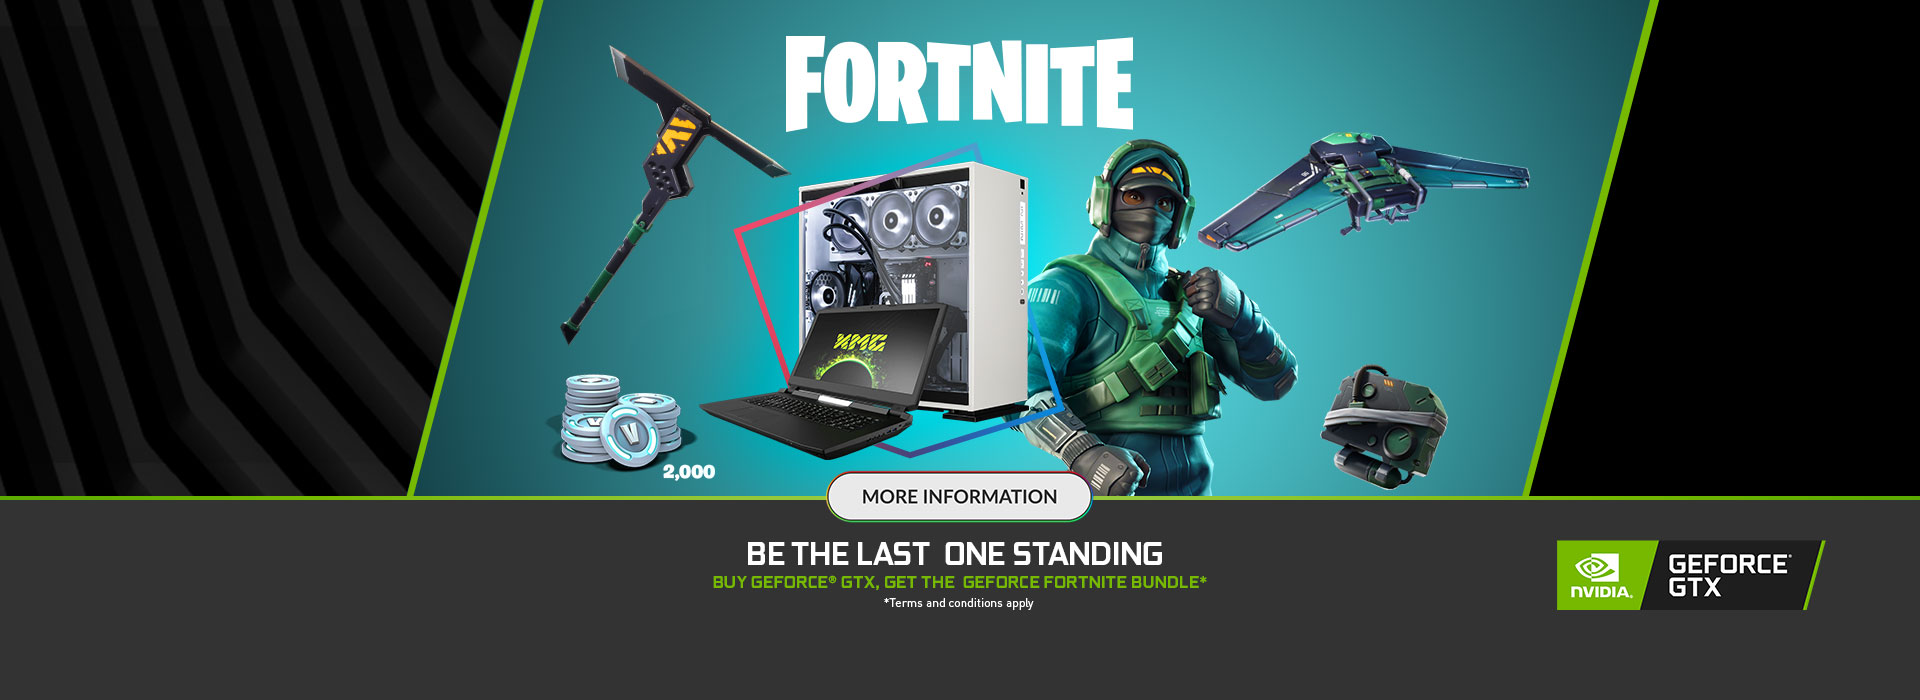 GeForce Fortnite Bundle